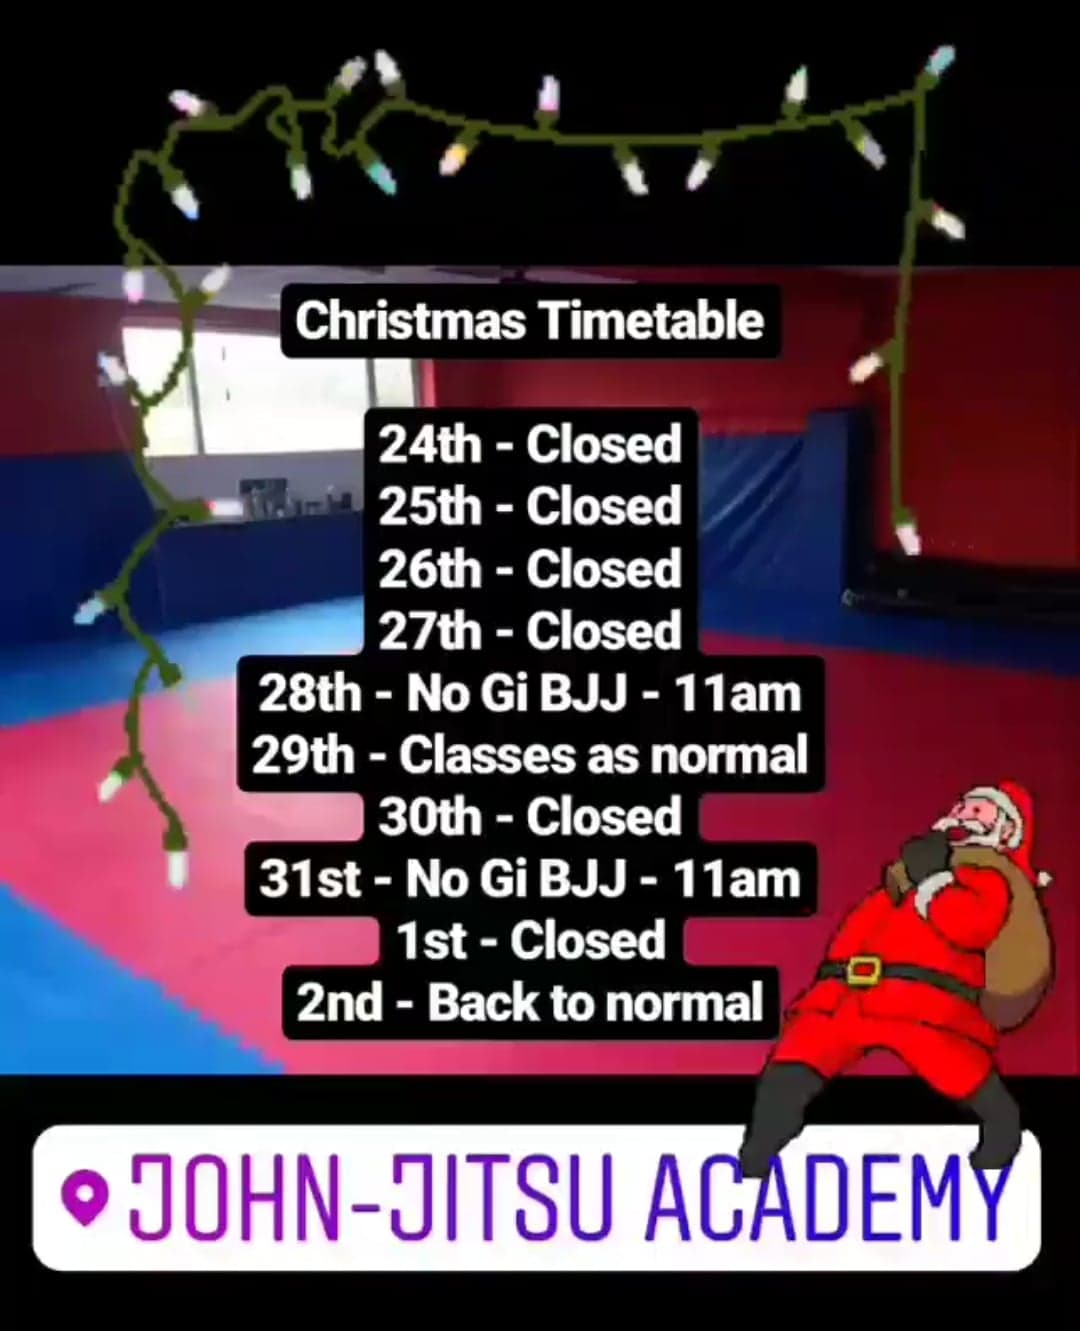 Christmas Timetable 2018 - Merry Christmas from everyone at the academy.